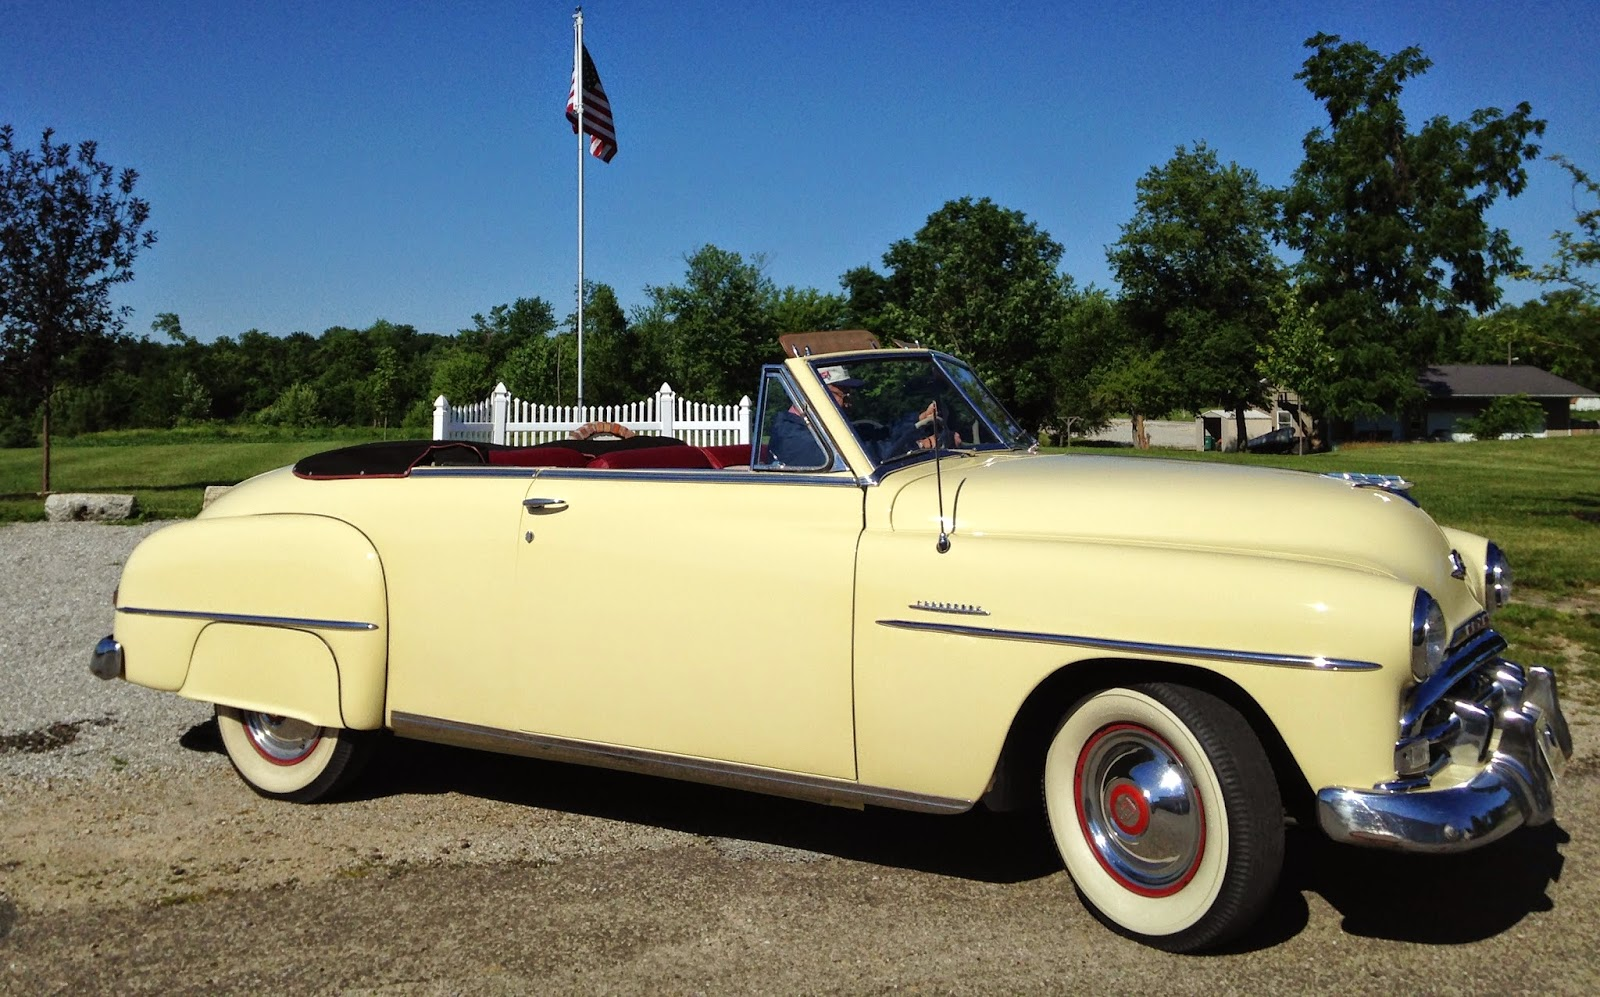 Plymouth Owners Club Hoosier Region Members Cars 1948 Business Coupe Jack Lindas 1951 P23 Cranbrook Convertible